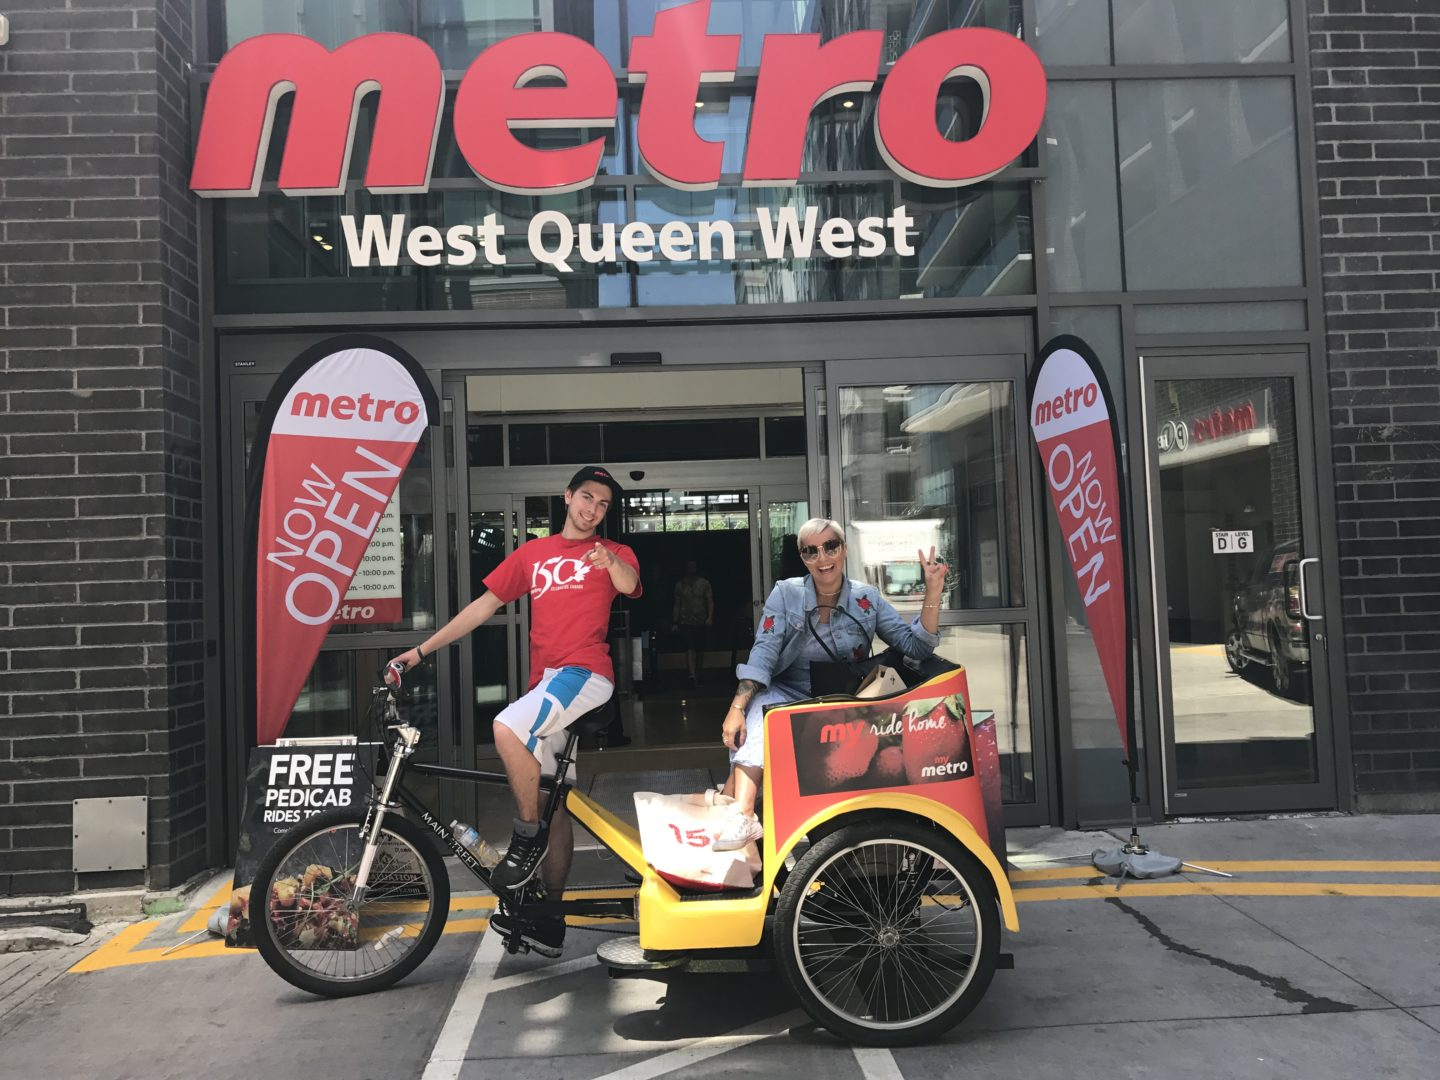 West Queen West Has a Metro Now!